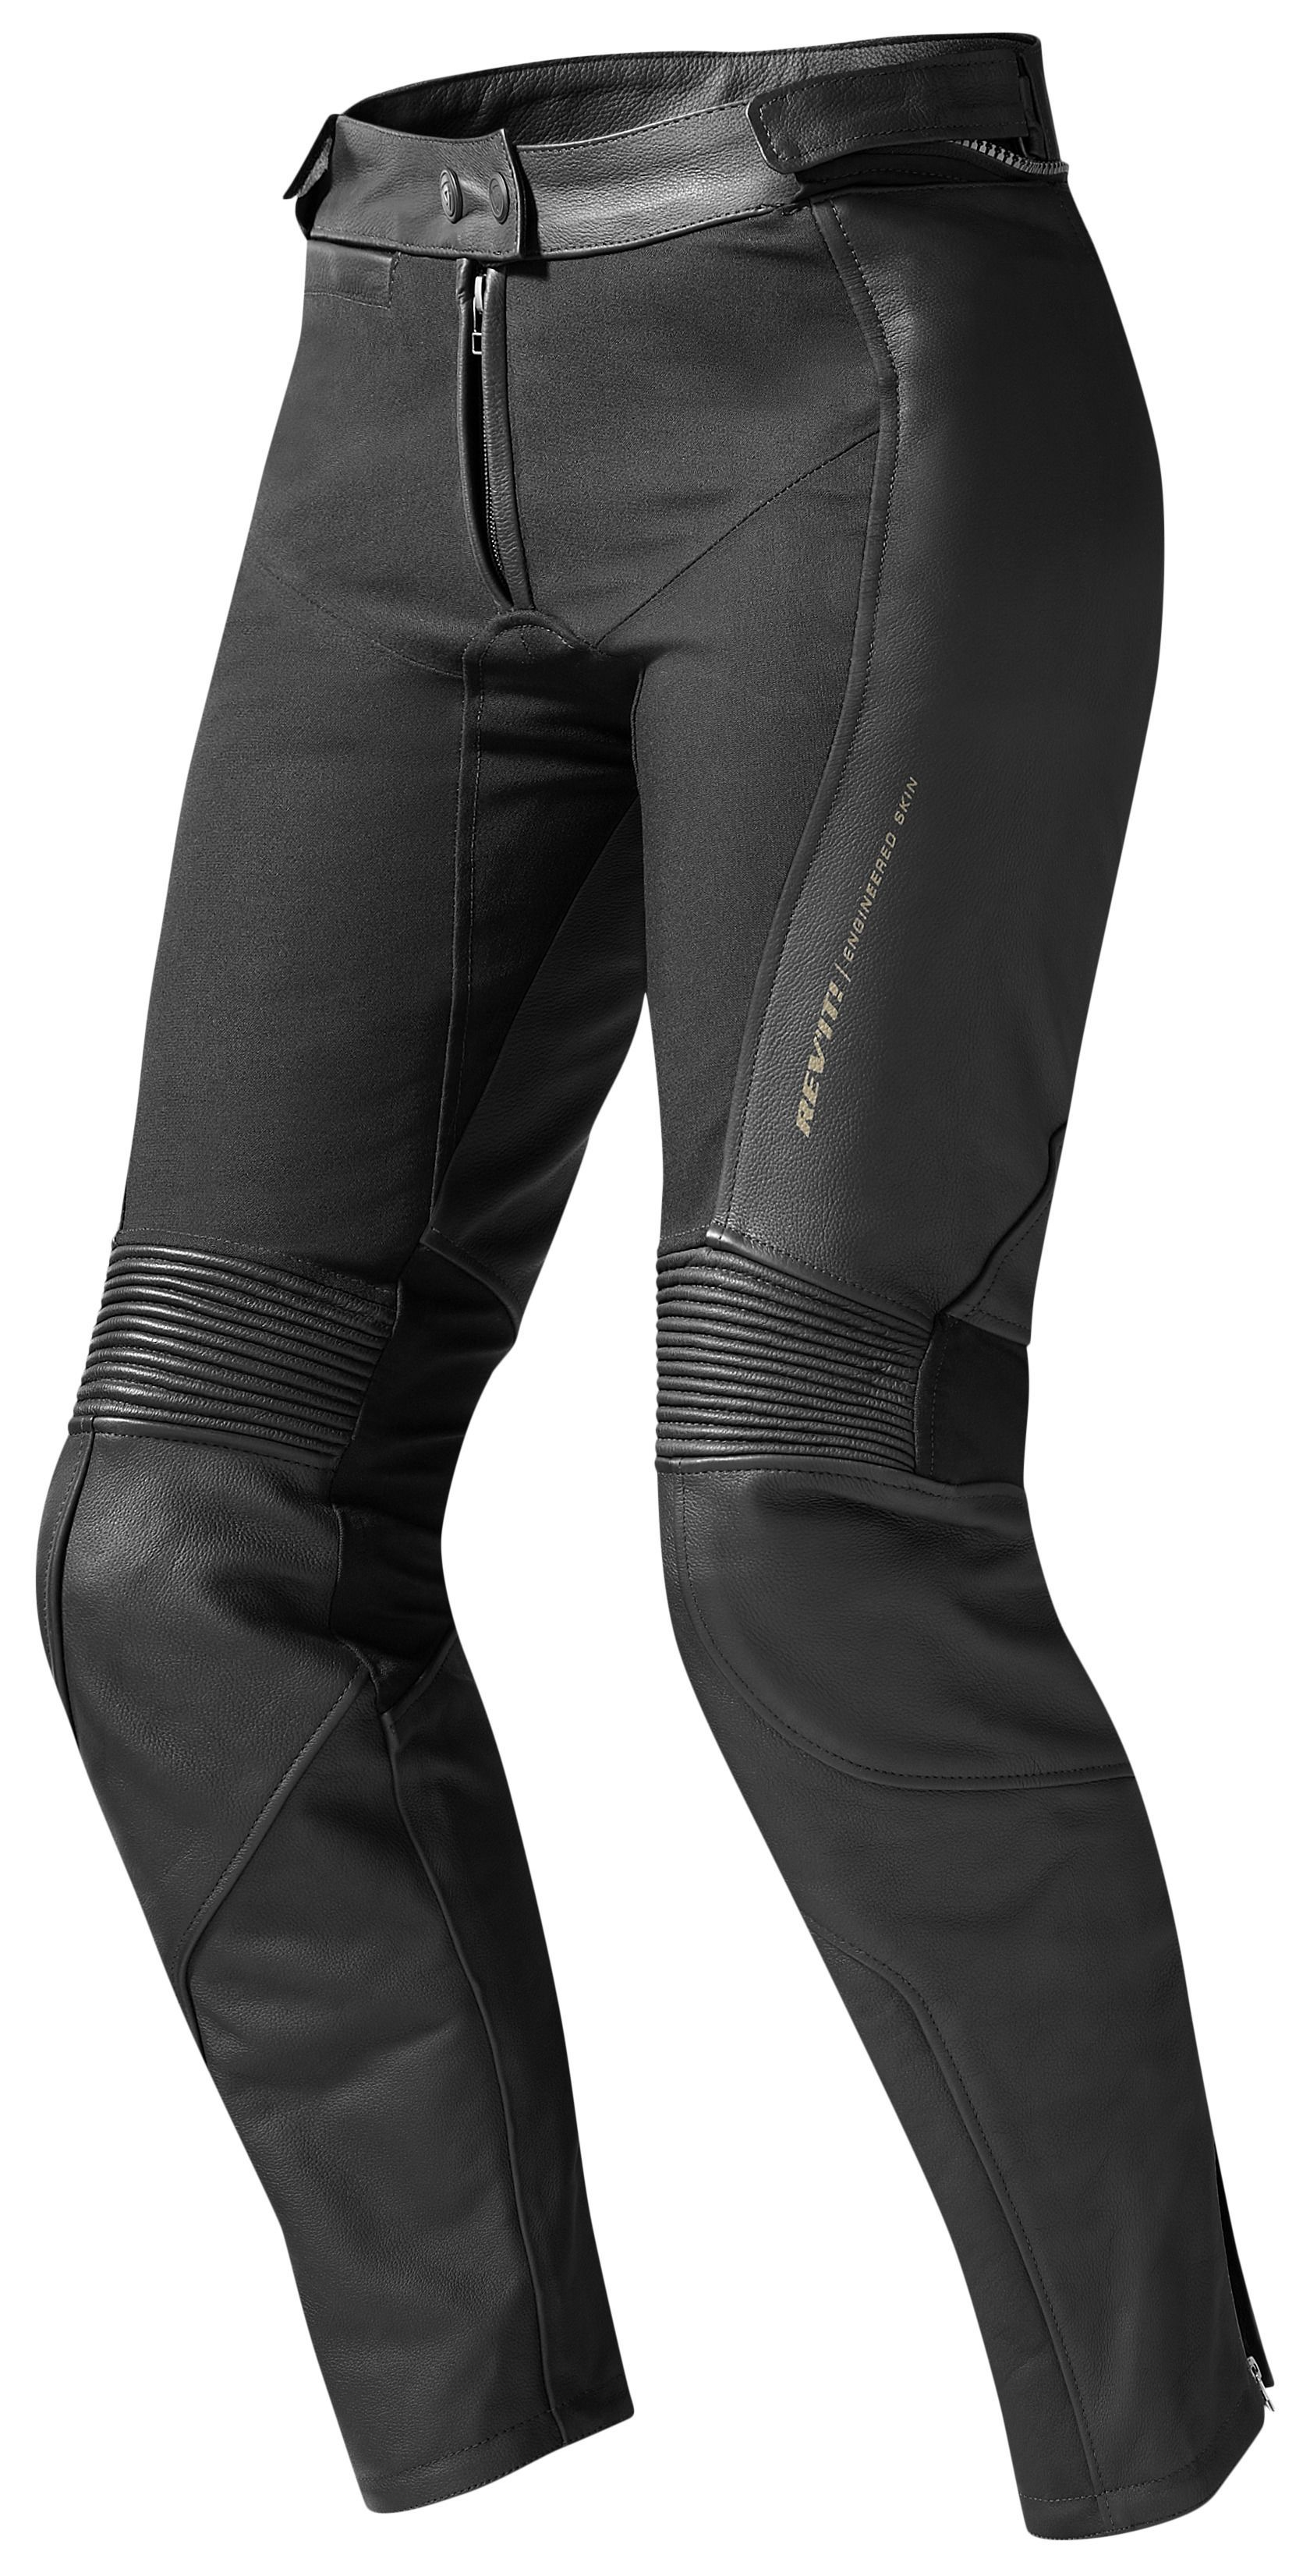 BLACK MEN/'S MOTORCYCLE LEATHER TROUSER MOTORBIKE PANT LEATHER TROUSER XS-4XL